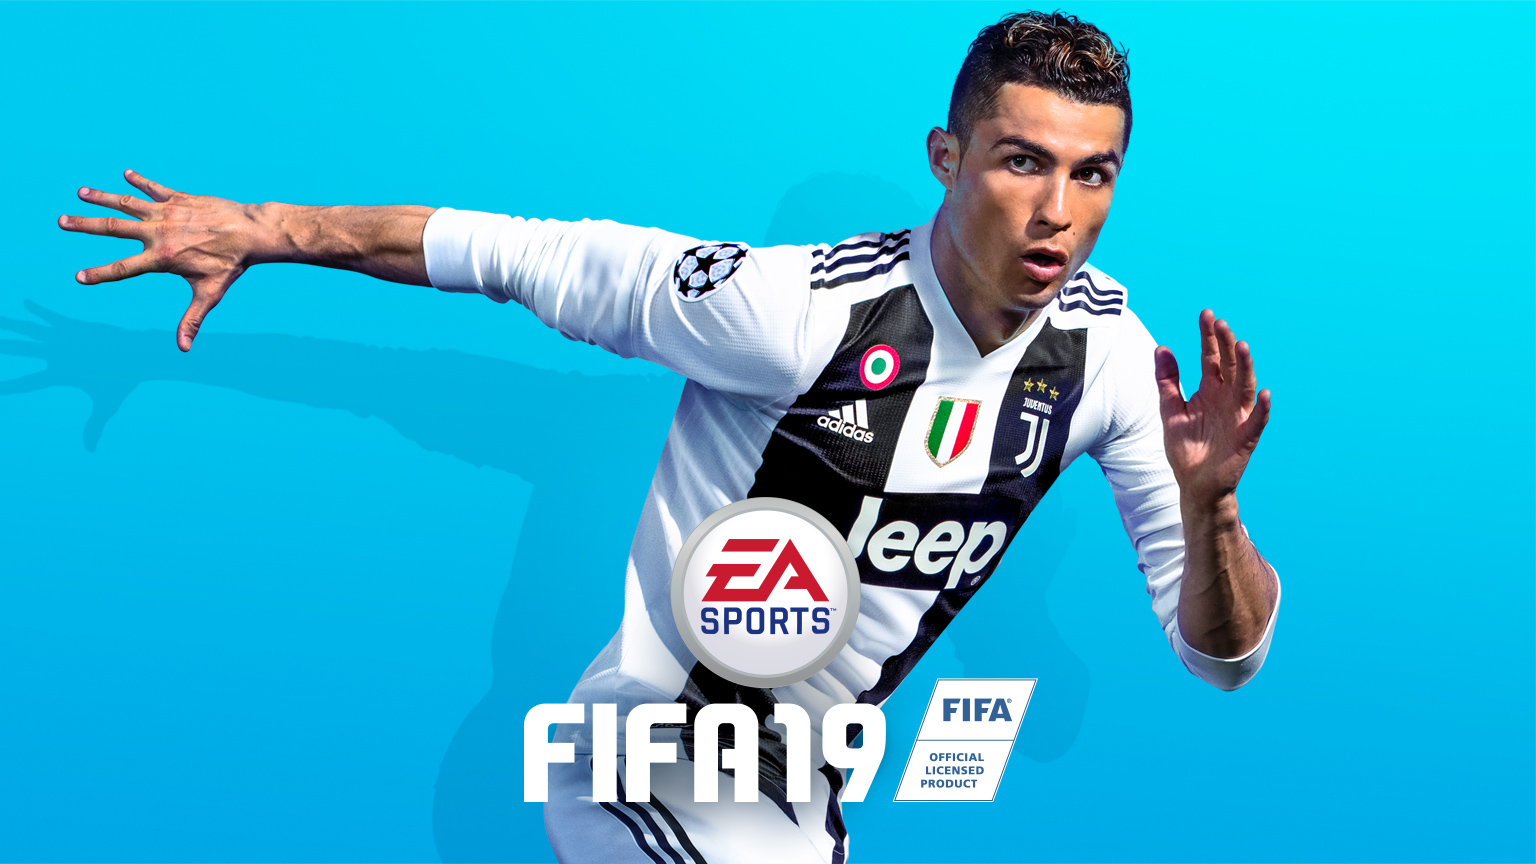 FIFA 19 [Includes Update 4 + Latest Squad Update + MULTi19] for PC [36.7 GB] Highly Compressed Repack